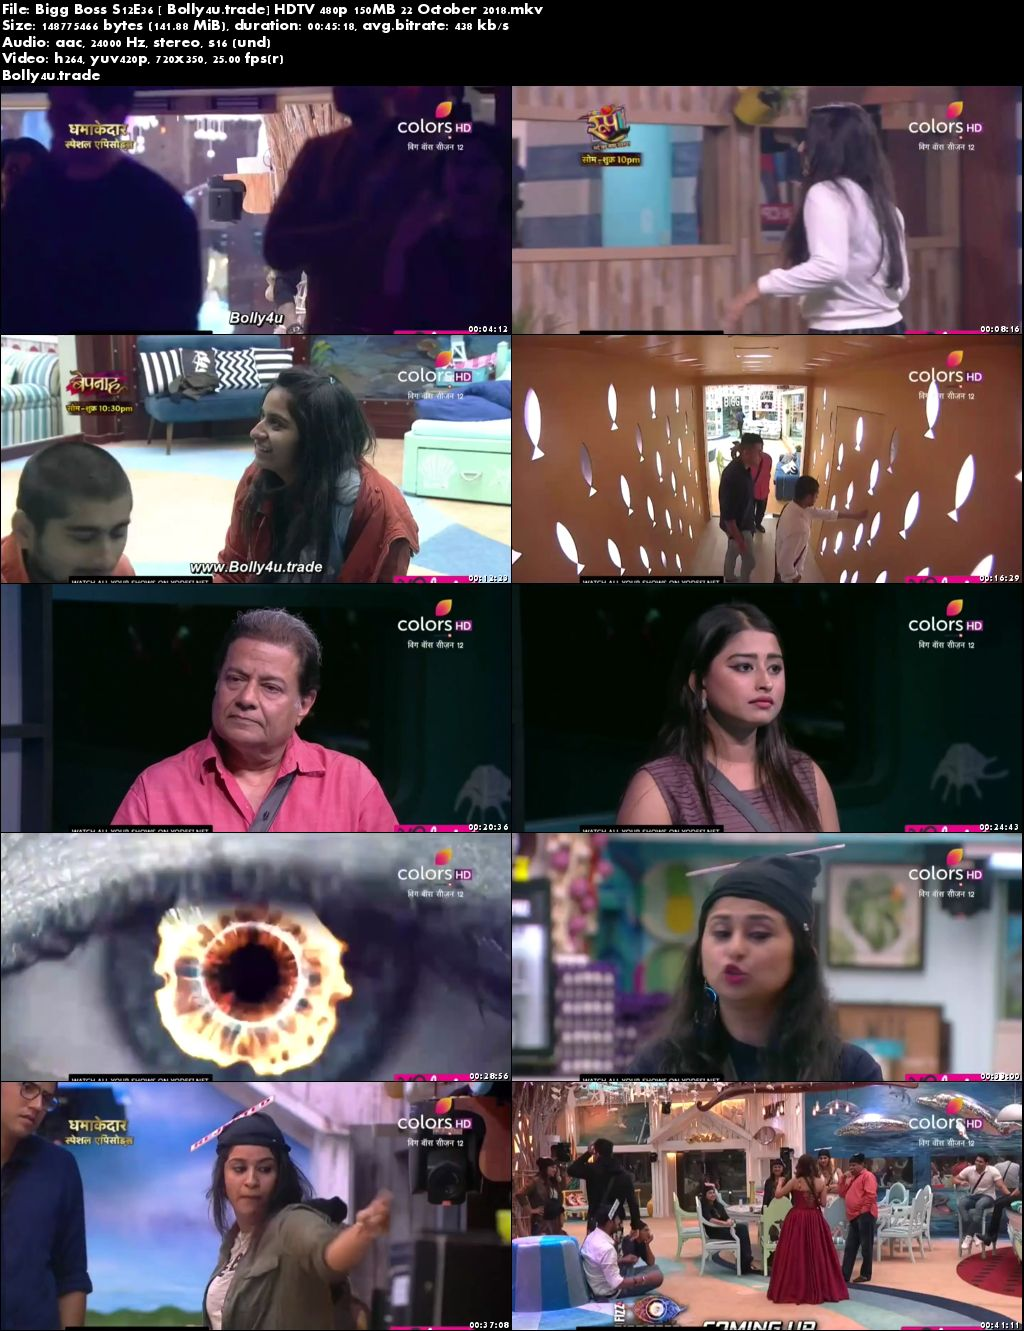 Bigg Boss S12E36 HDTV 480p 140MB 22 October 2018 Download